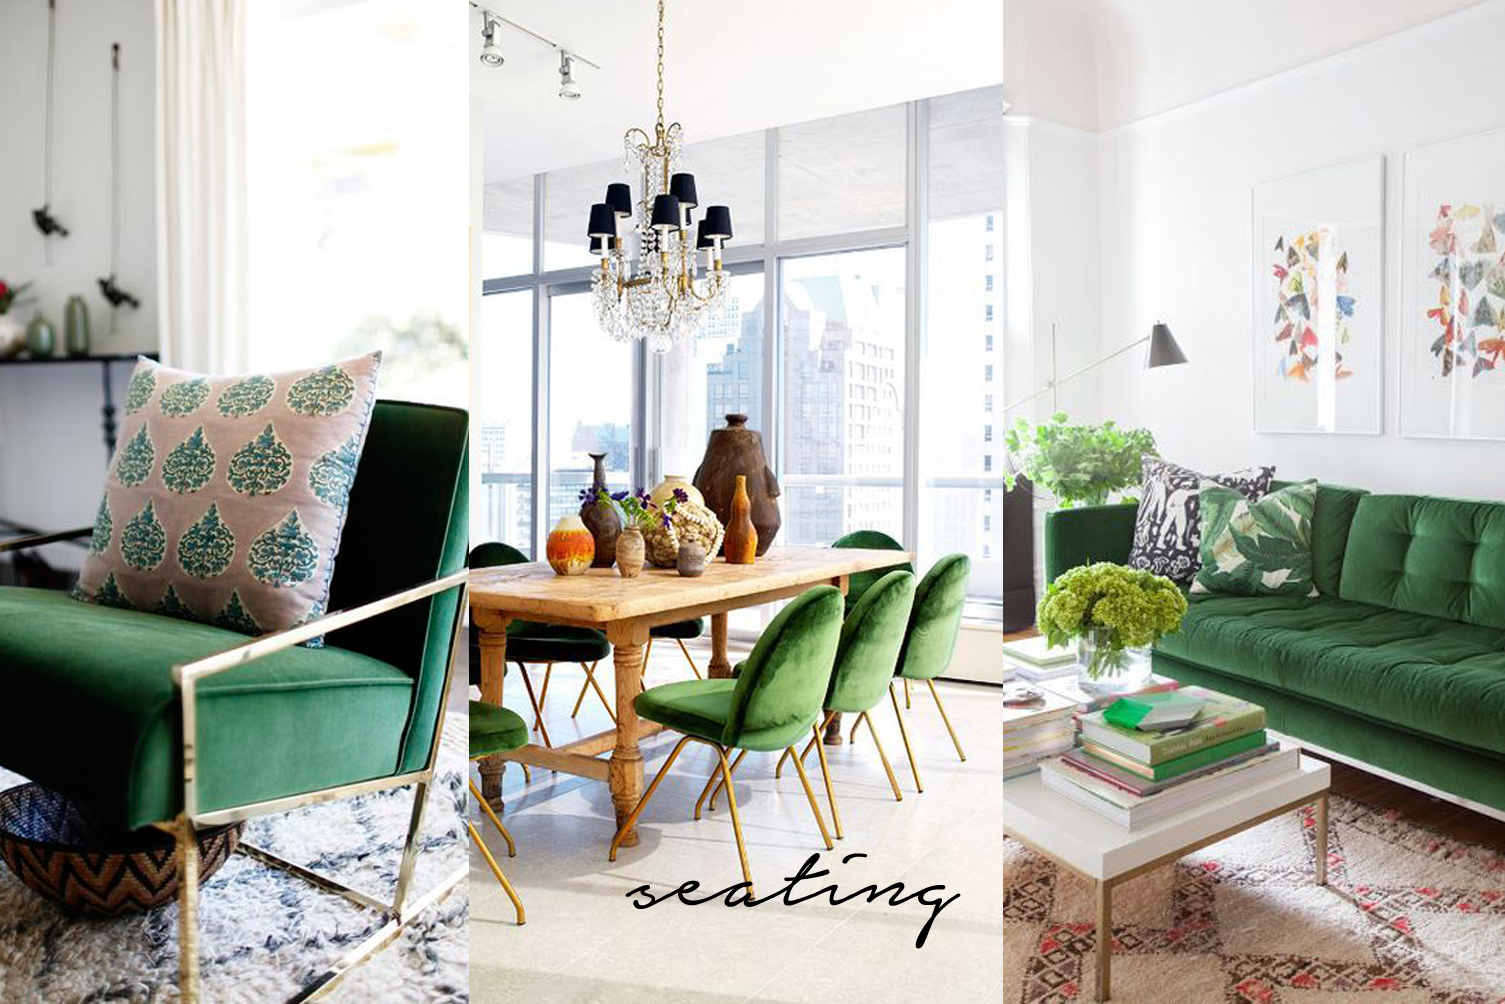 pantone greenery seating interior design ideas